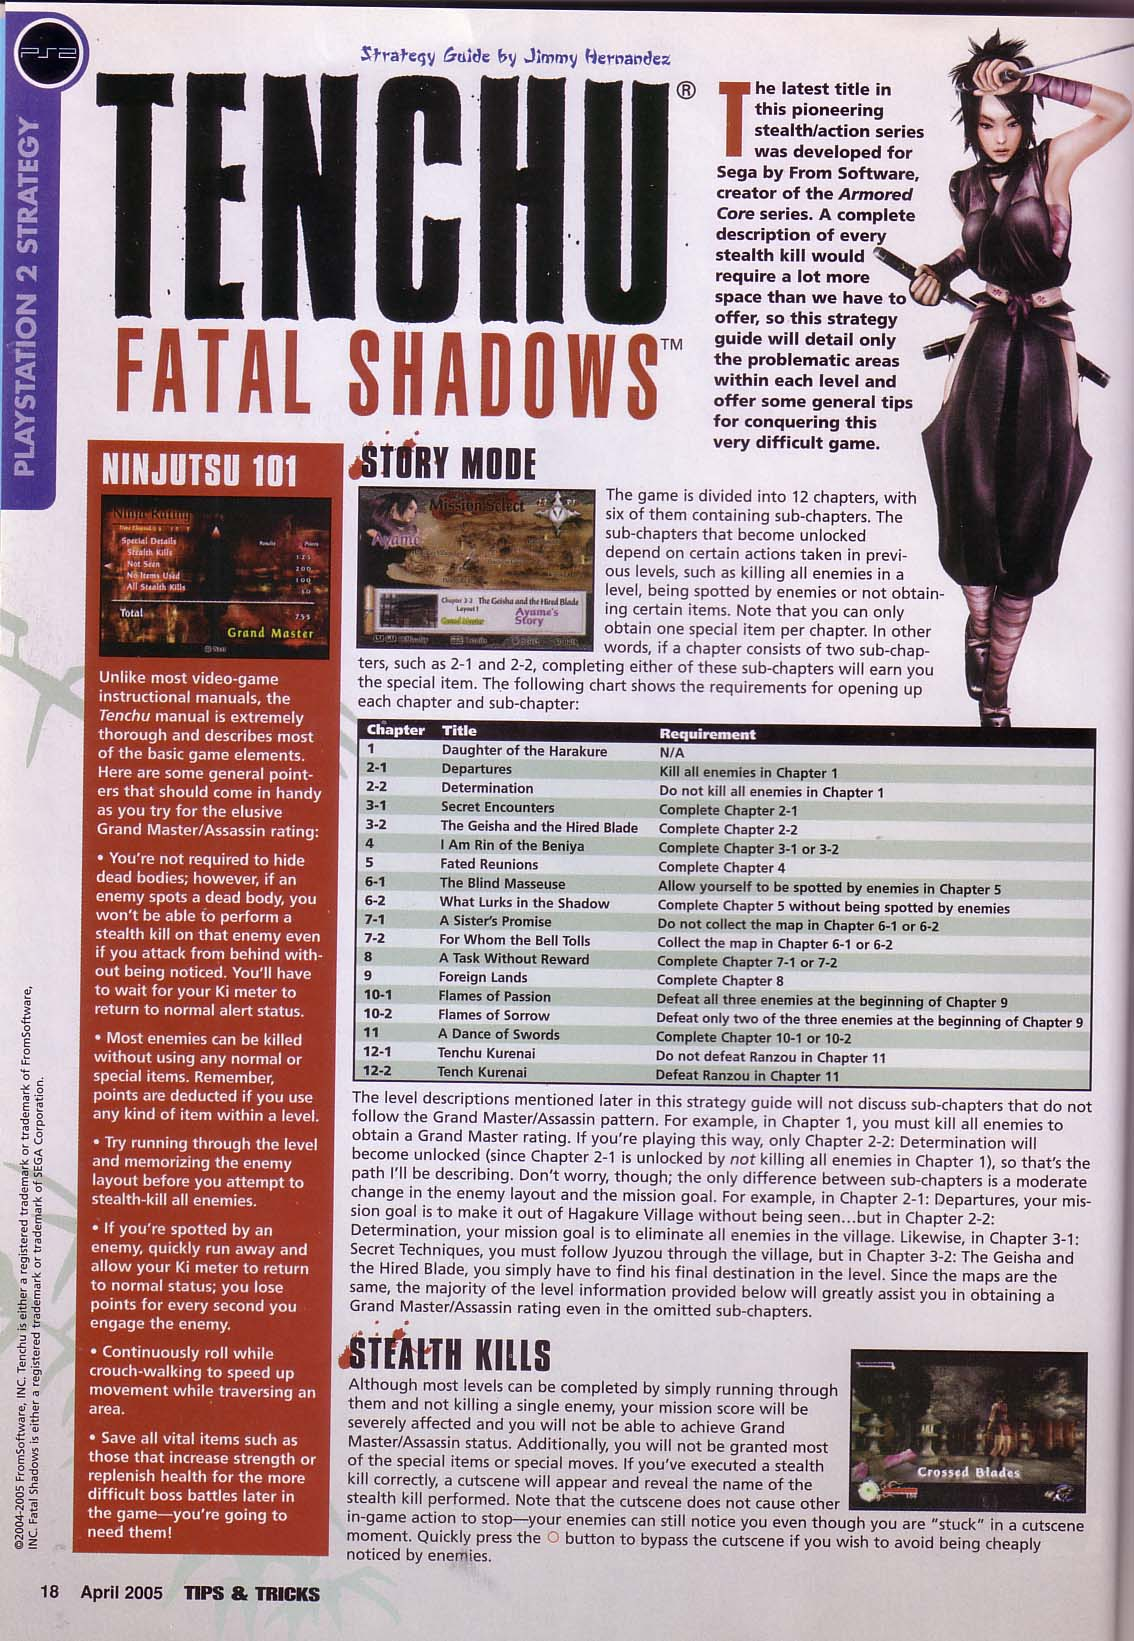 TipsandTricks_April_2005_Tenchu_pg1_Strategy.jpg